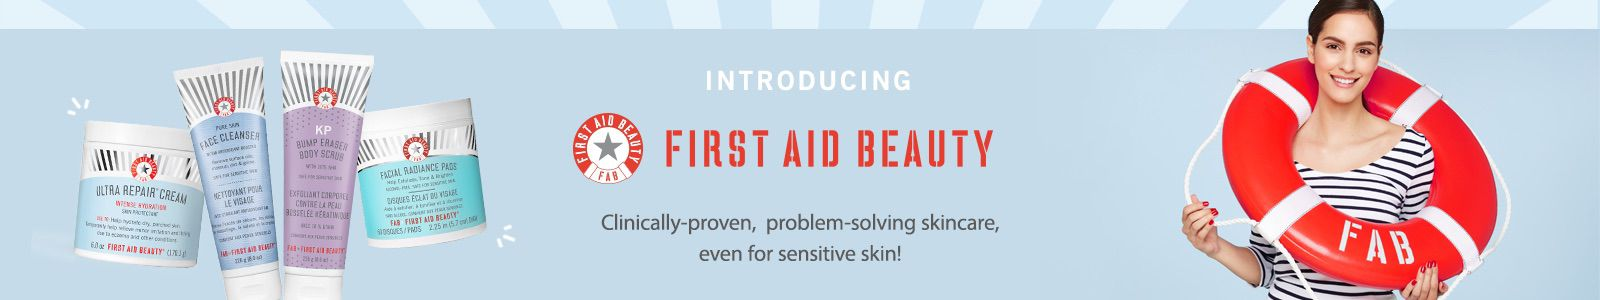 Introducing, First Aid Beauty, Clinically-proven, problem-solving skincare, even for sensitive skin!